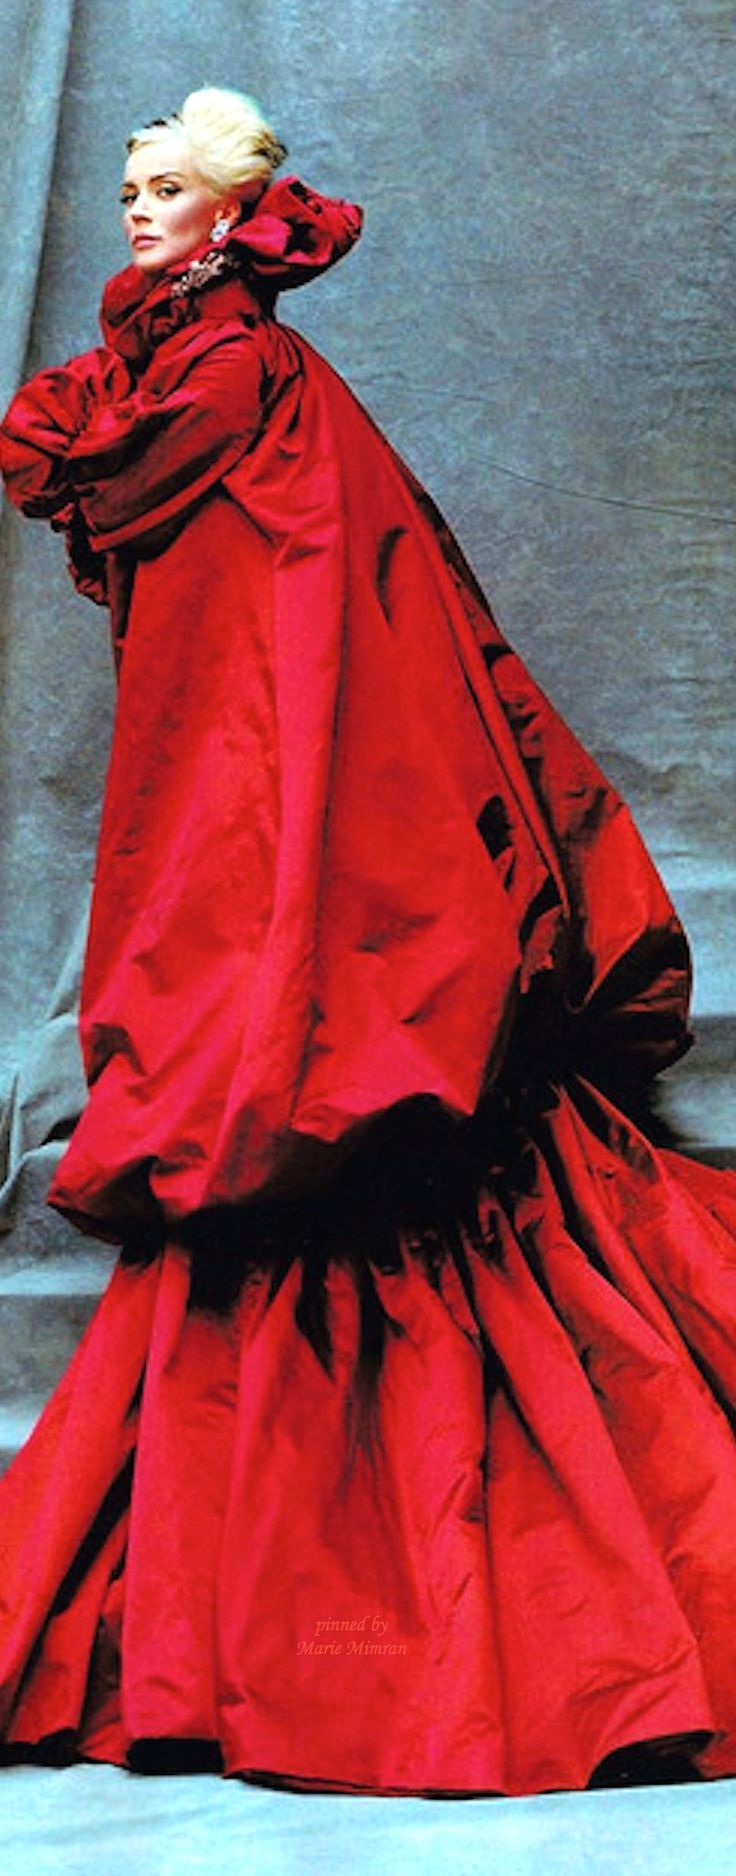 Daphne Guiness in Alexander McQueen by Michael Roberts. Inspiration for Aunt Venetia in Model Under Cover. http://www.carinaaxelsson.com